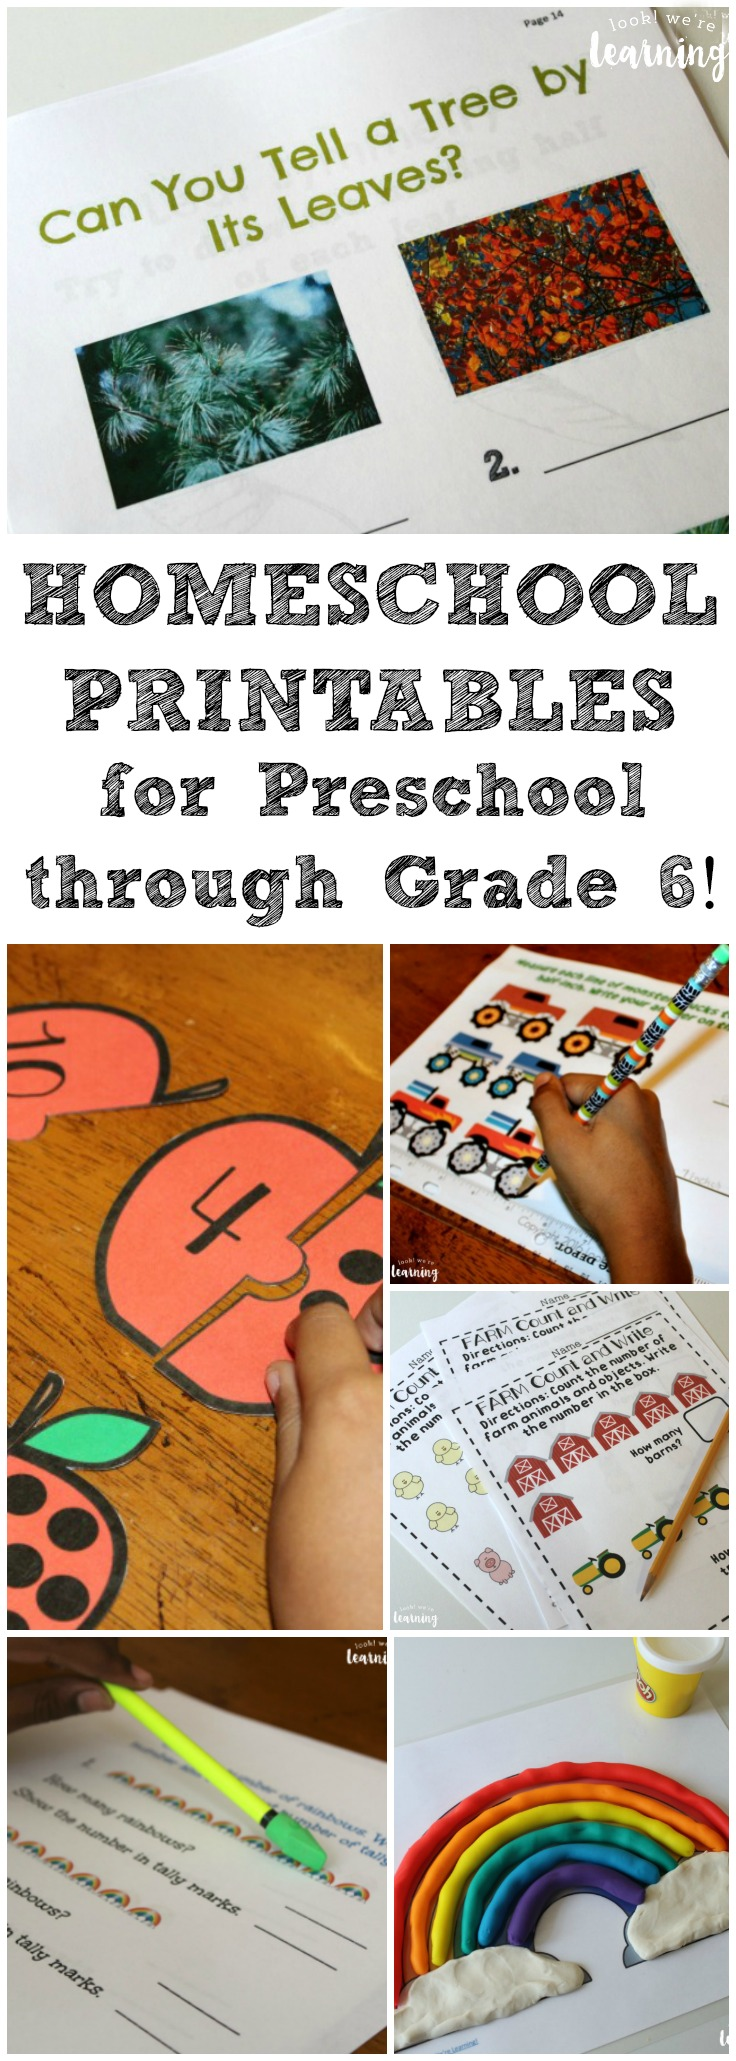 Take a look at all of our homeschool printables for preschoolers all the way to middle schoolers!